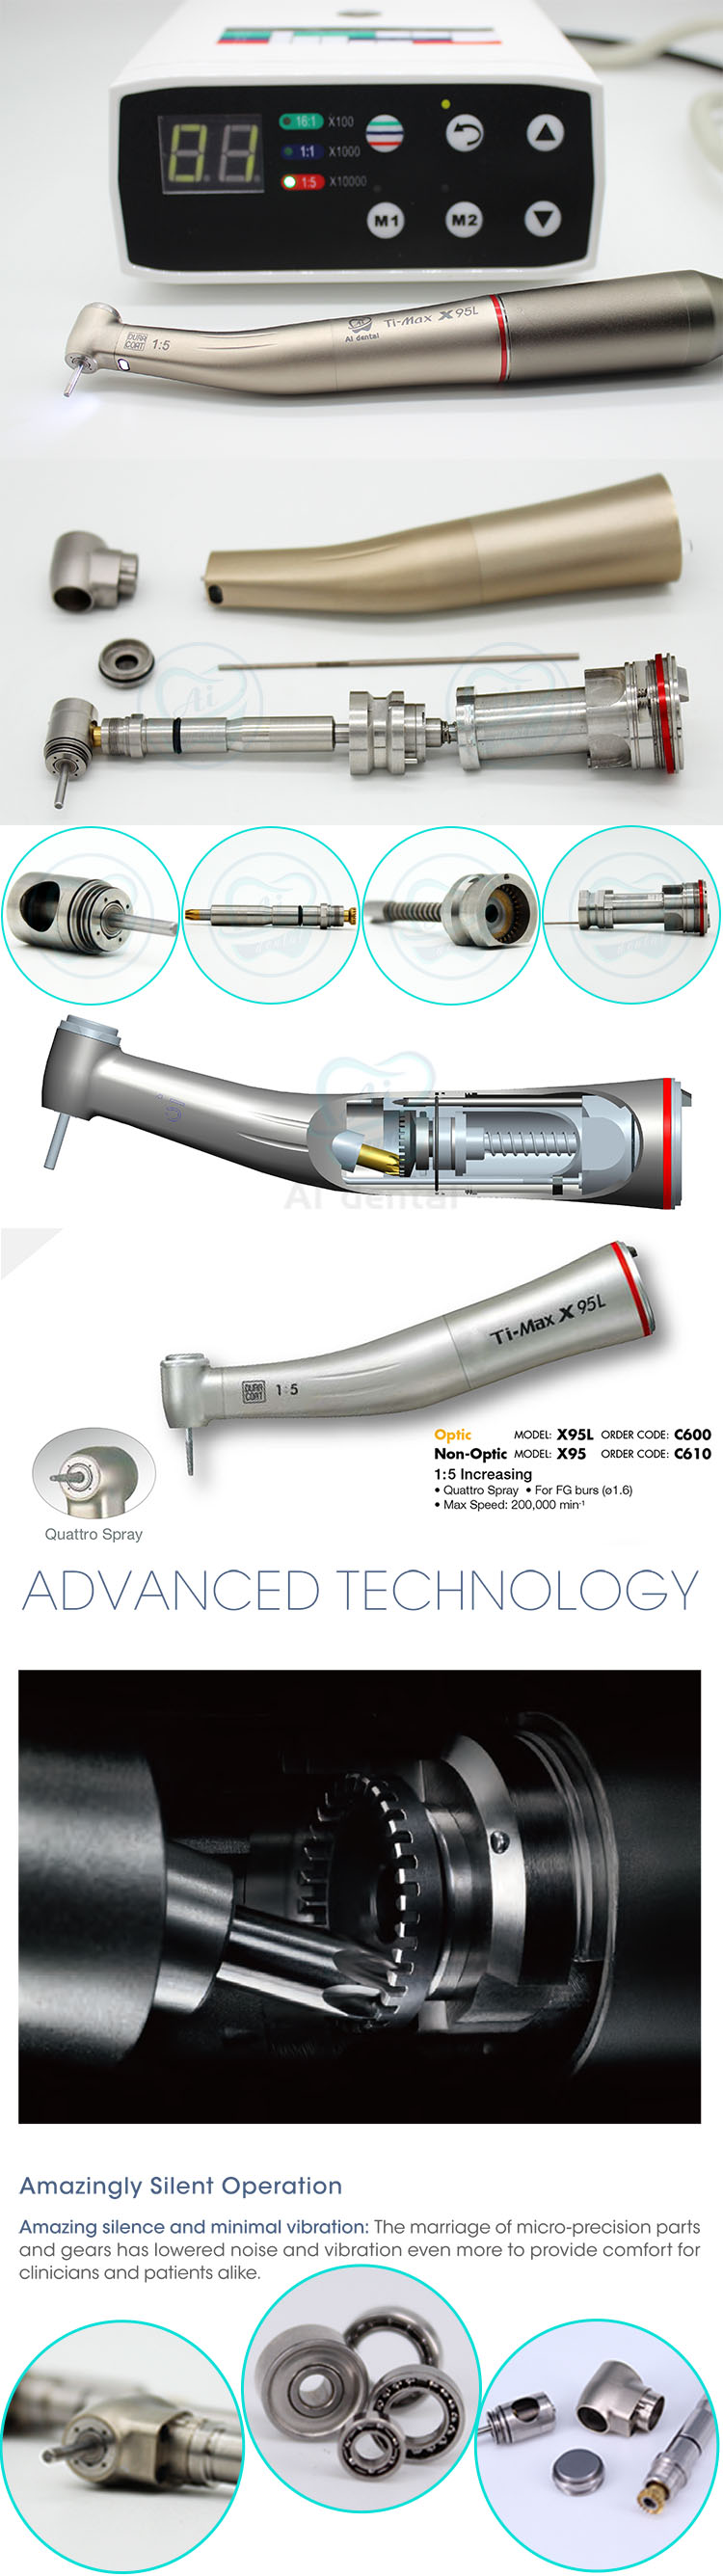 Best dental handpiece 1:5 contra angle increase high speed hand piece